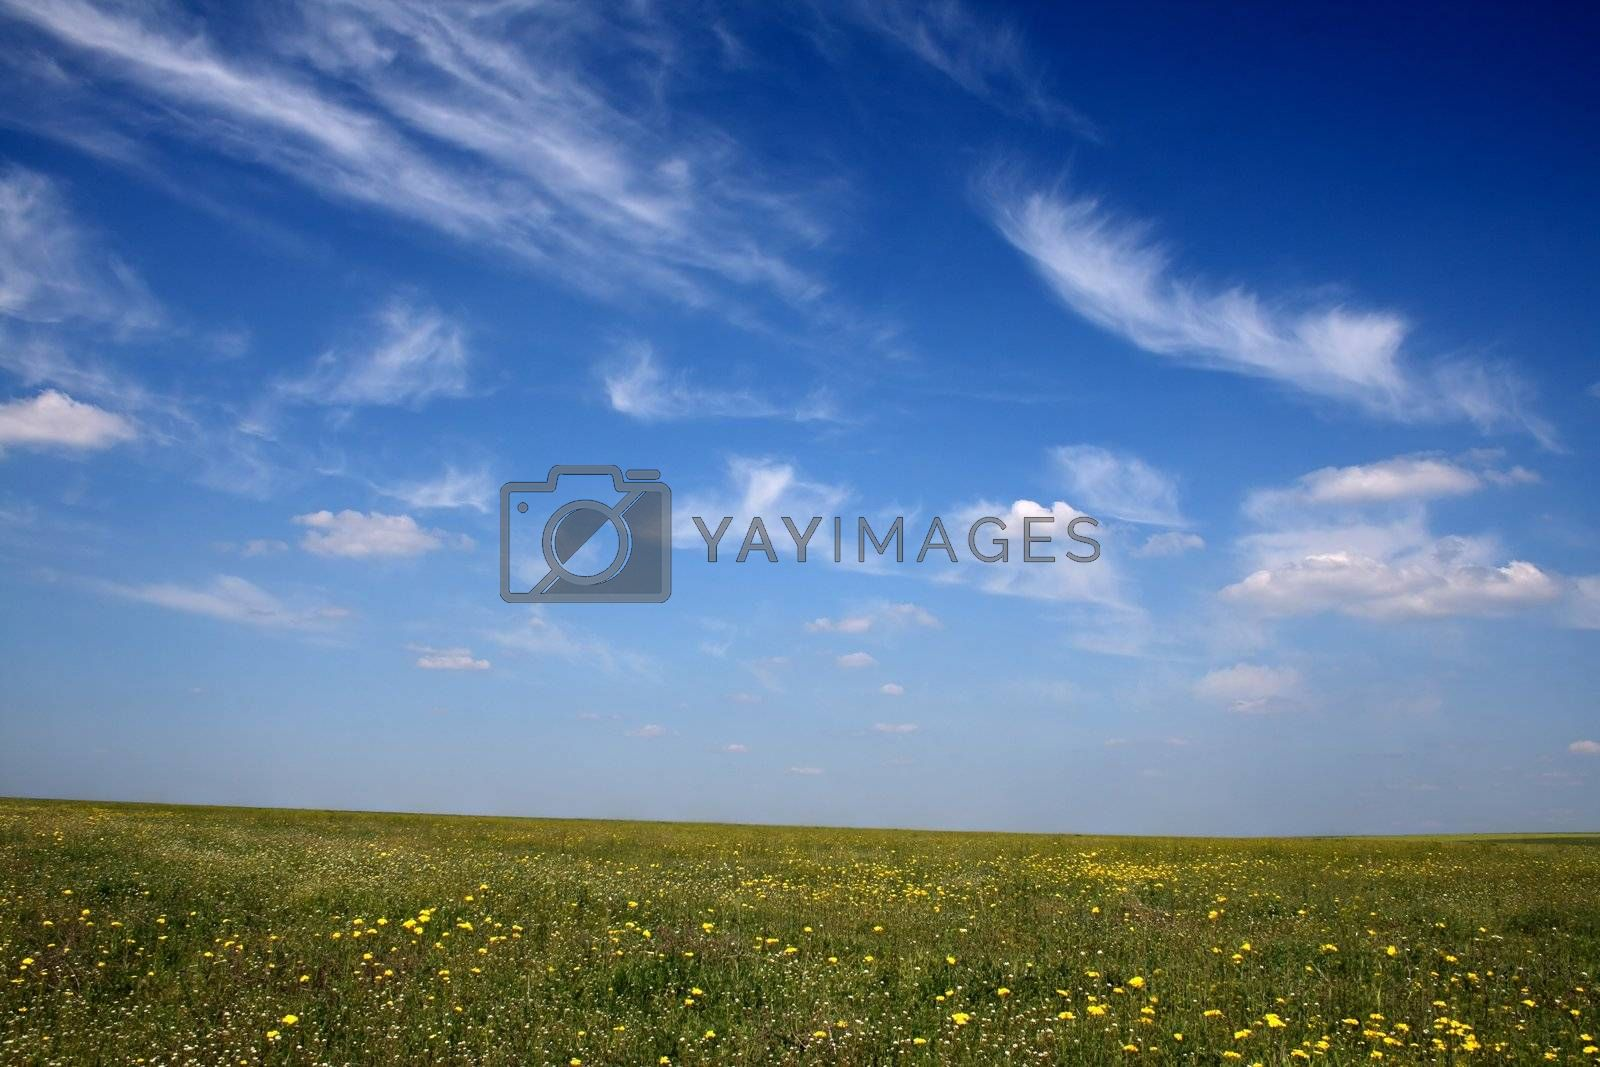 Meadow with yellow flowers on a calm sunny day